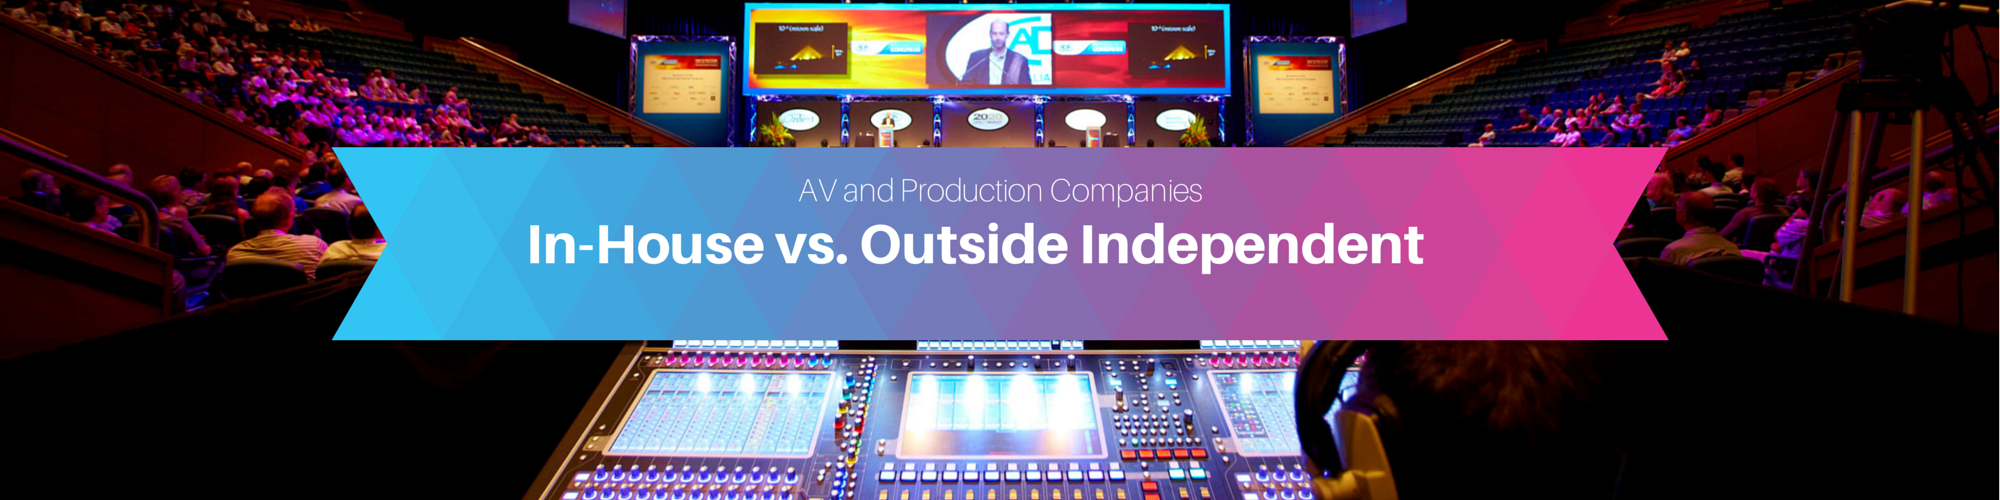 In House Vs Independent AV/Event Production Companies